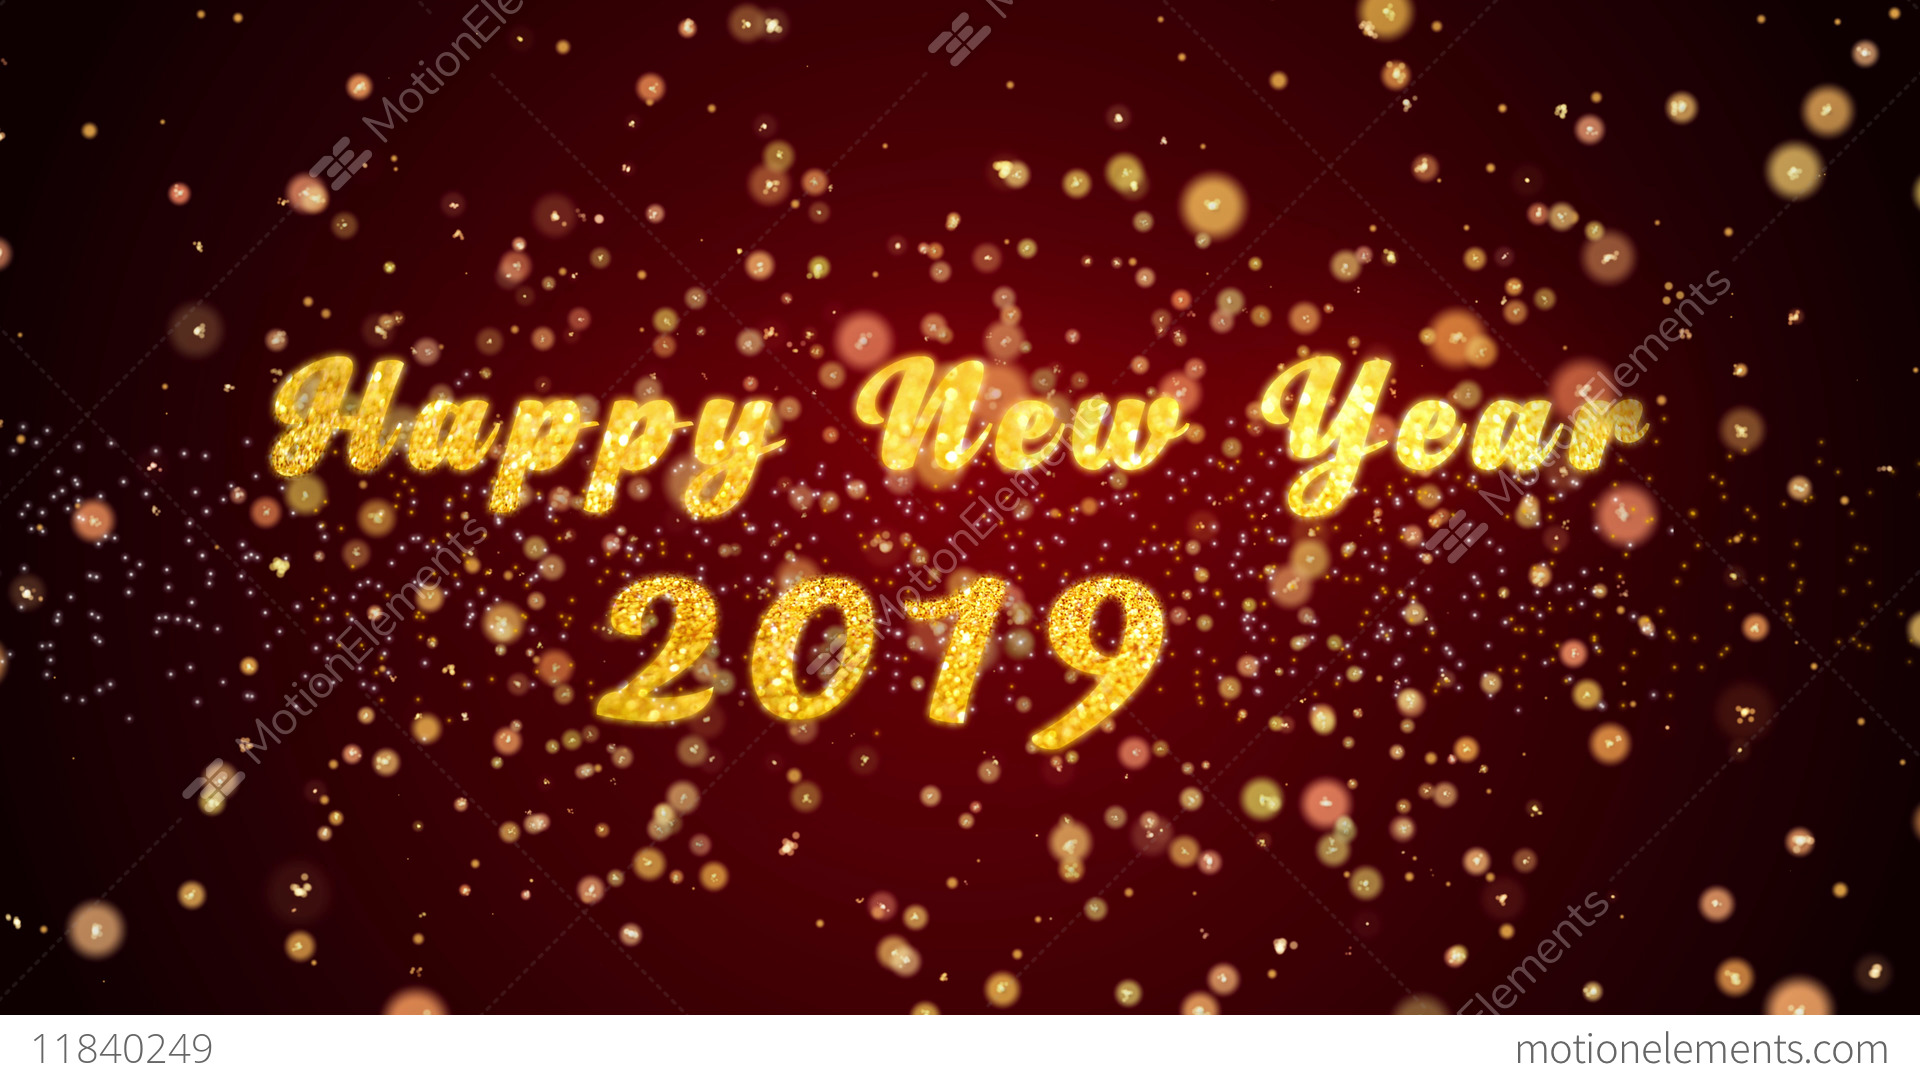 happy new year 2019 greeting card text shiny particles stock video footage